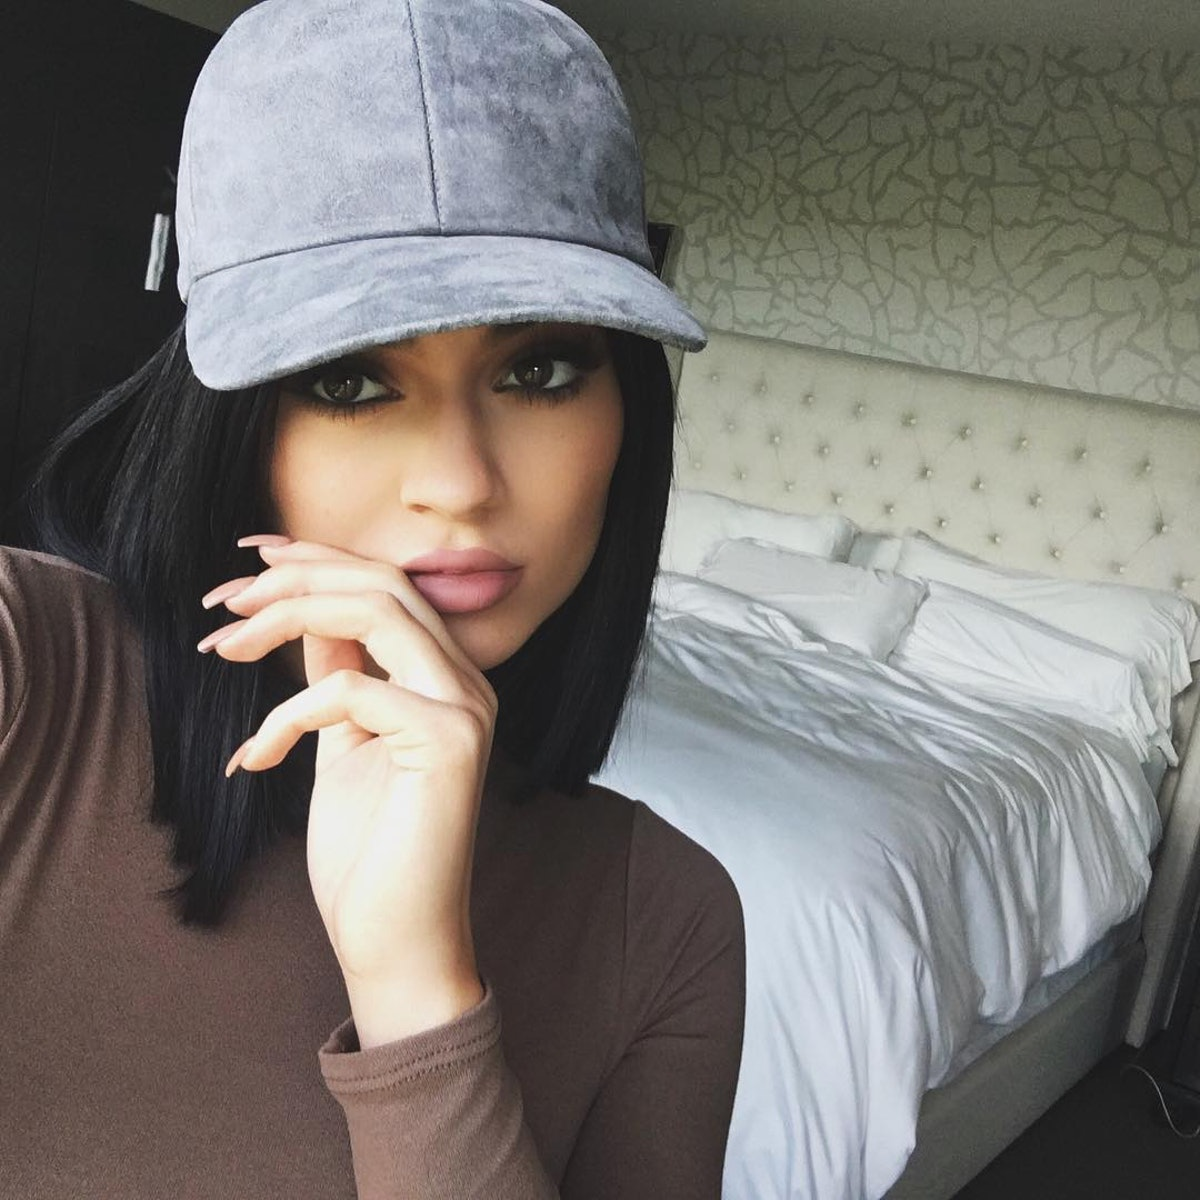 Kylie Jenner Ditches Her Acrylic Nails But The Worst Is Yet To Come